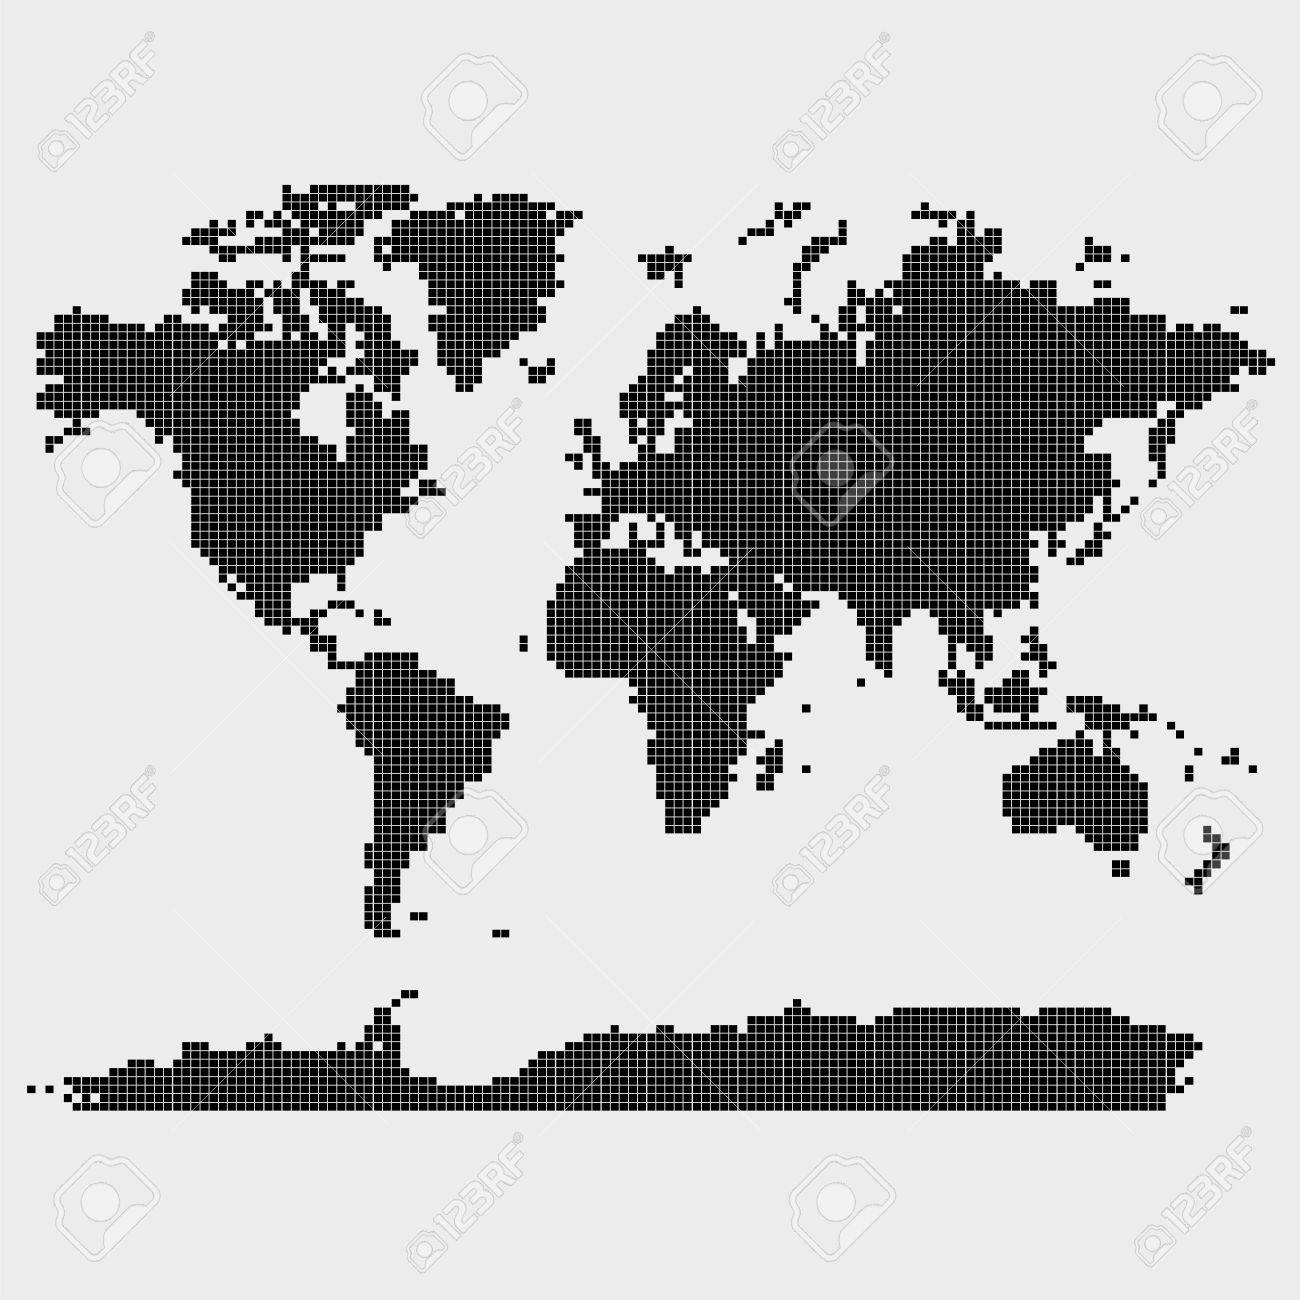 World map in squares vector 5512 squares elements royalty free vector world map in squares vector 5512 squares elements gumiabroncs Image collections